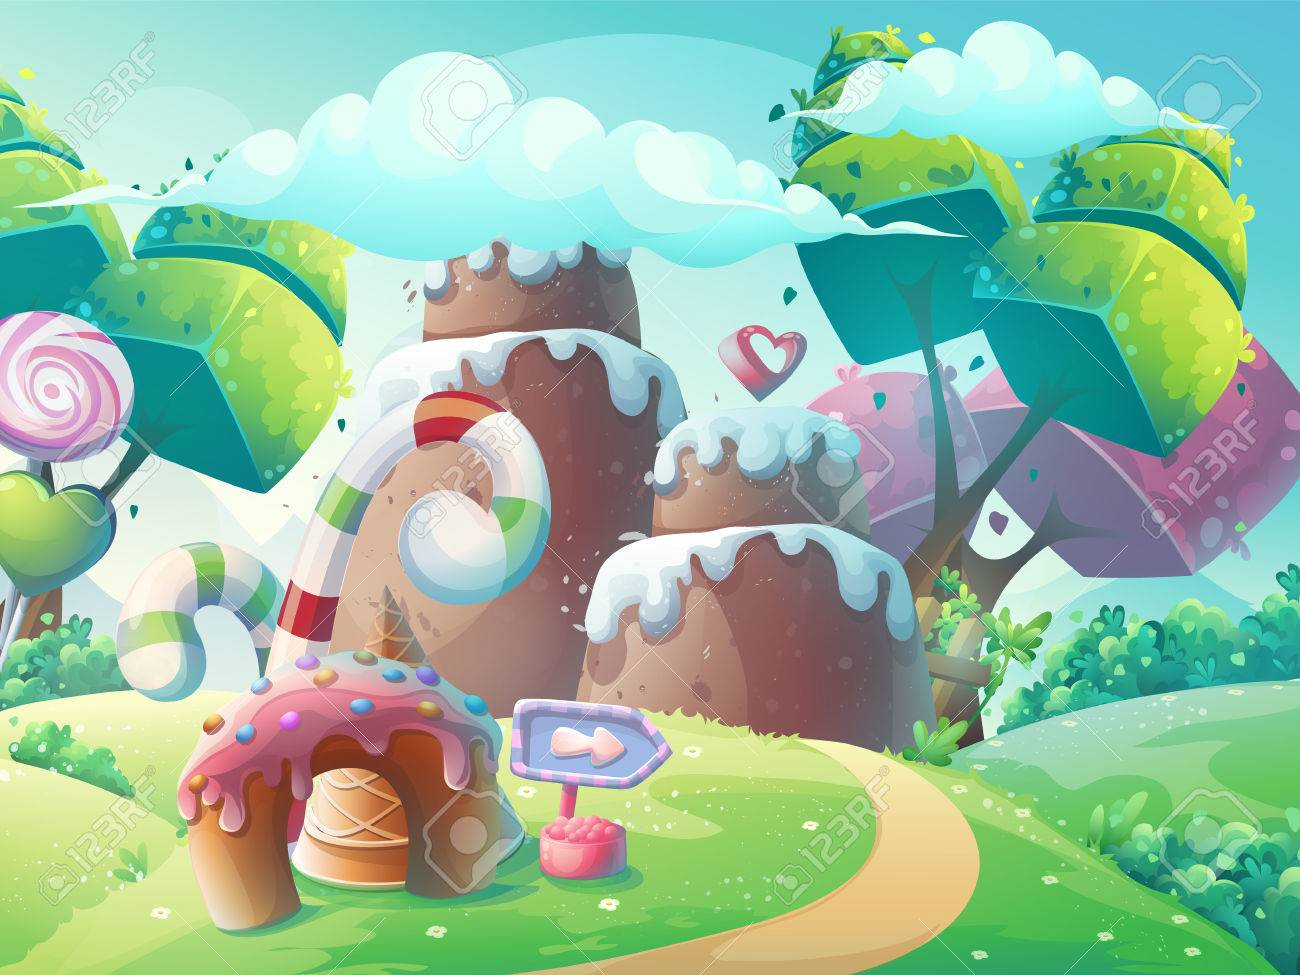 Vector cartoon illustration background sweet cake with fantasy trees - 67847132